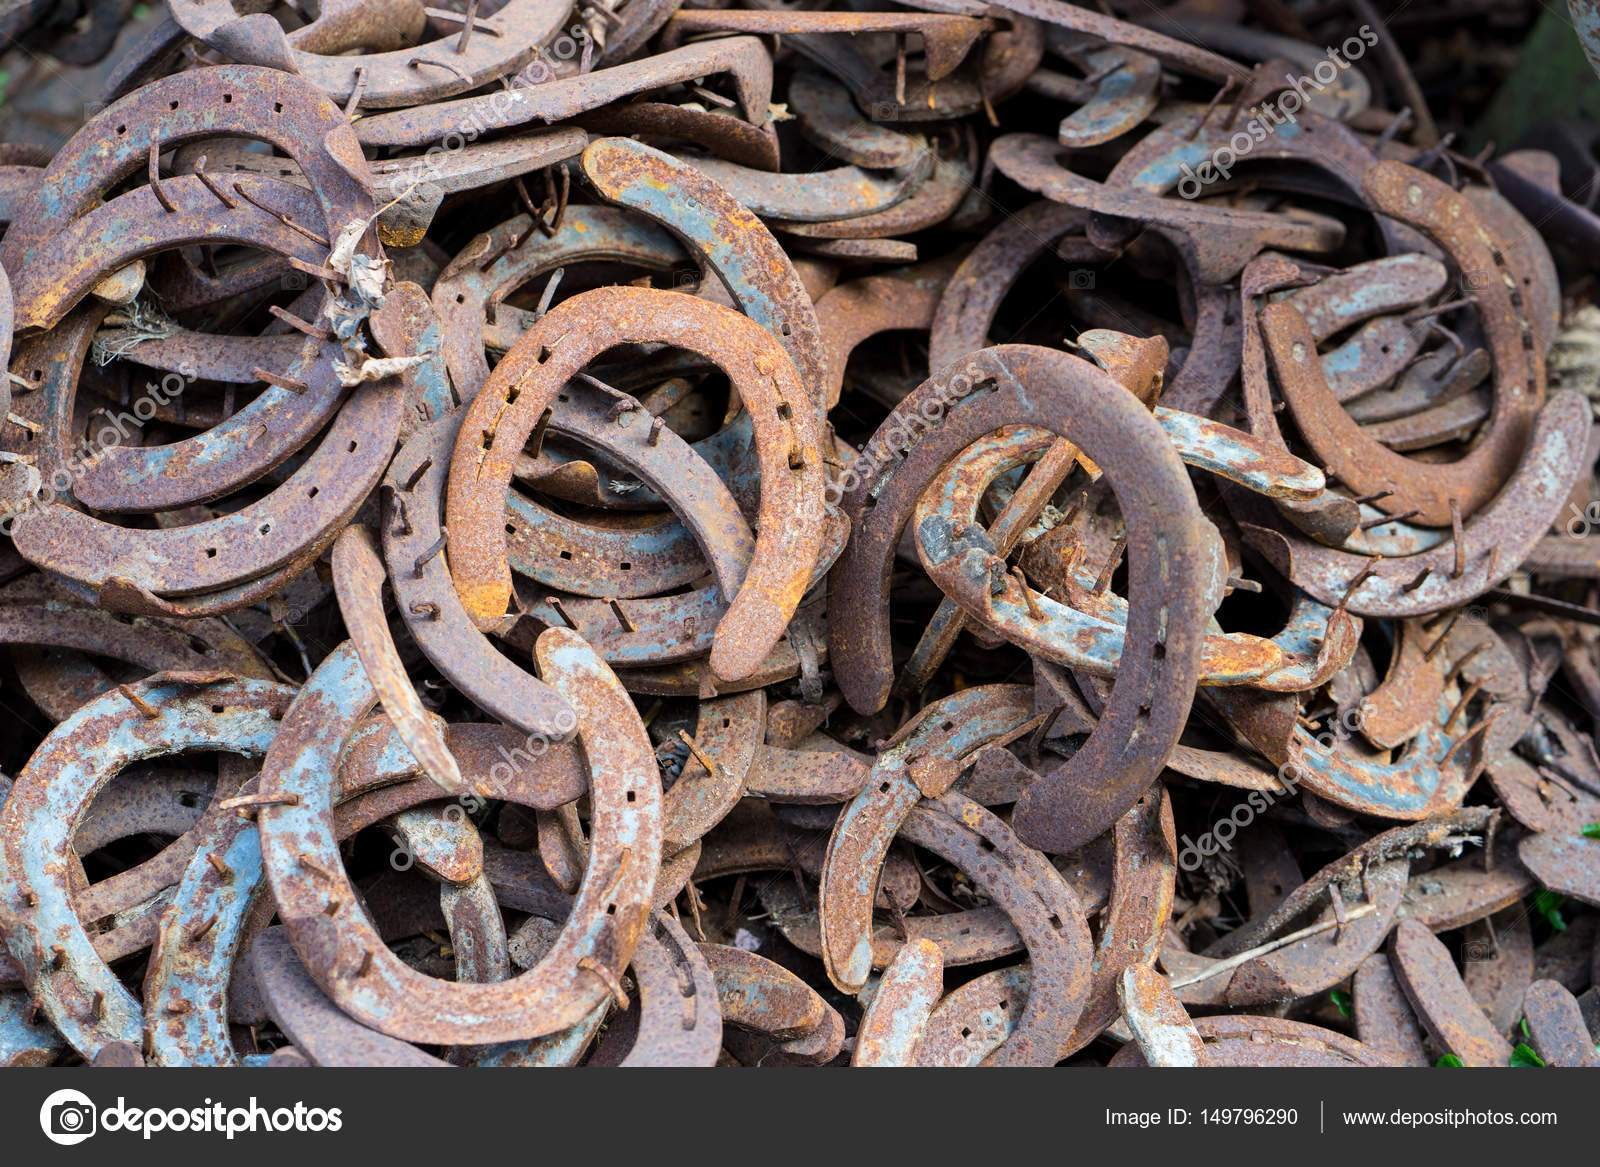 Large pile of rusty used horseshoes stock photo for Where to buy used horseshoes